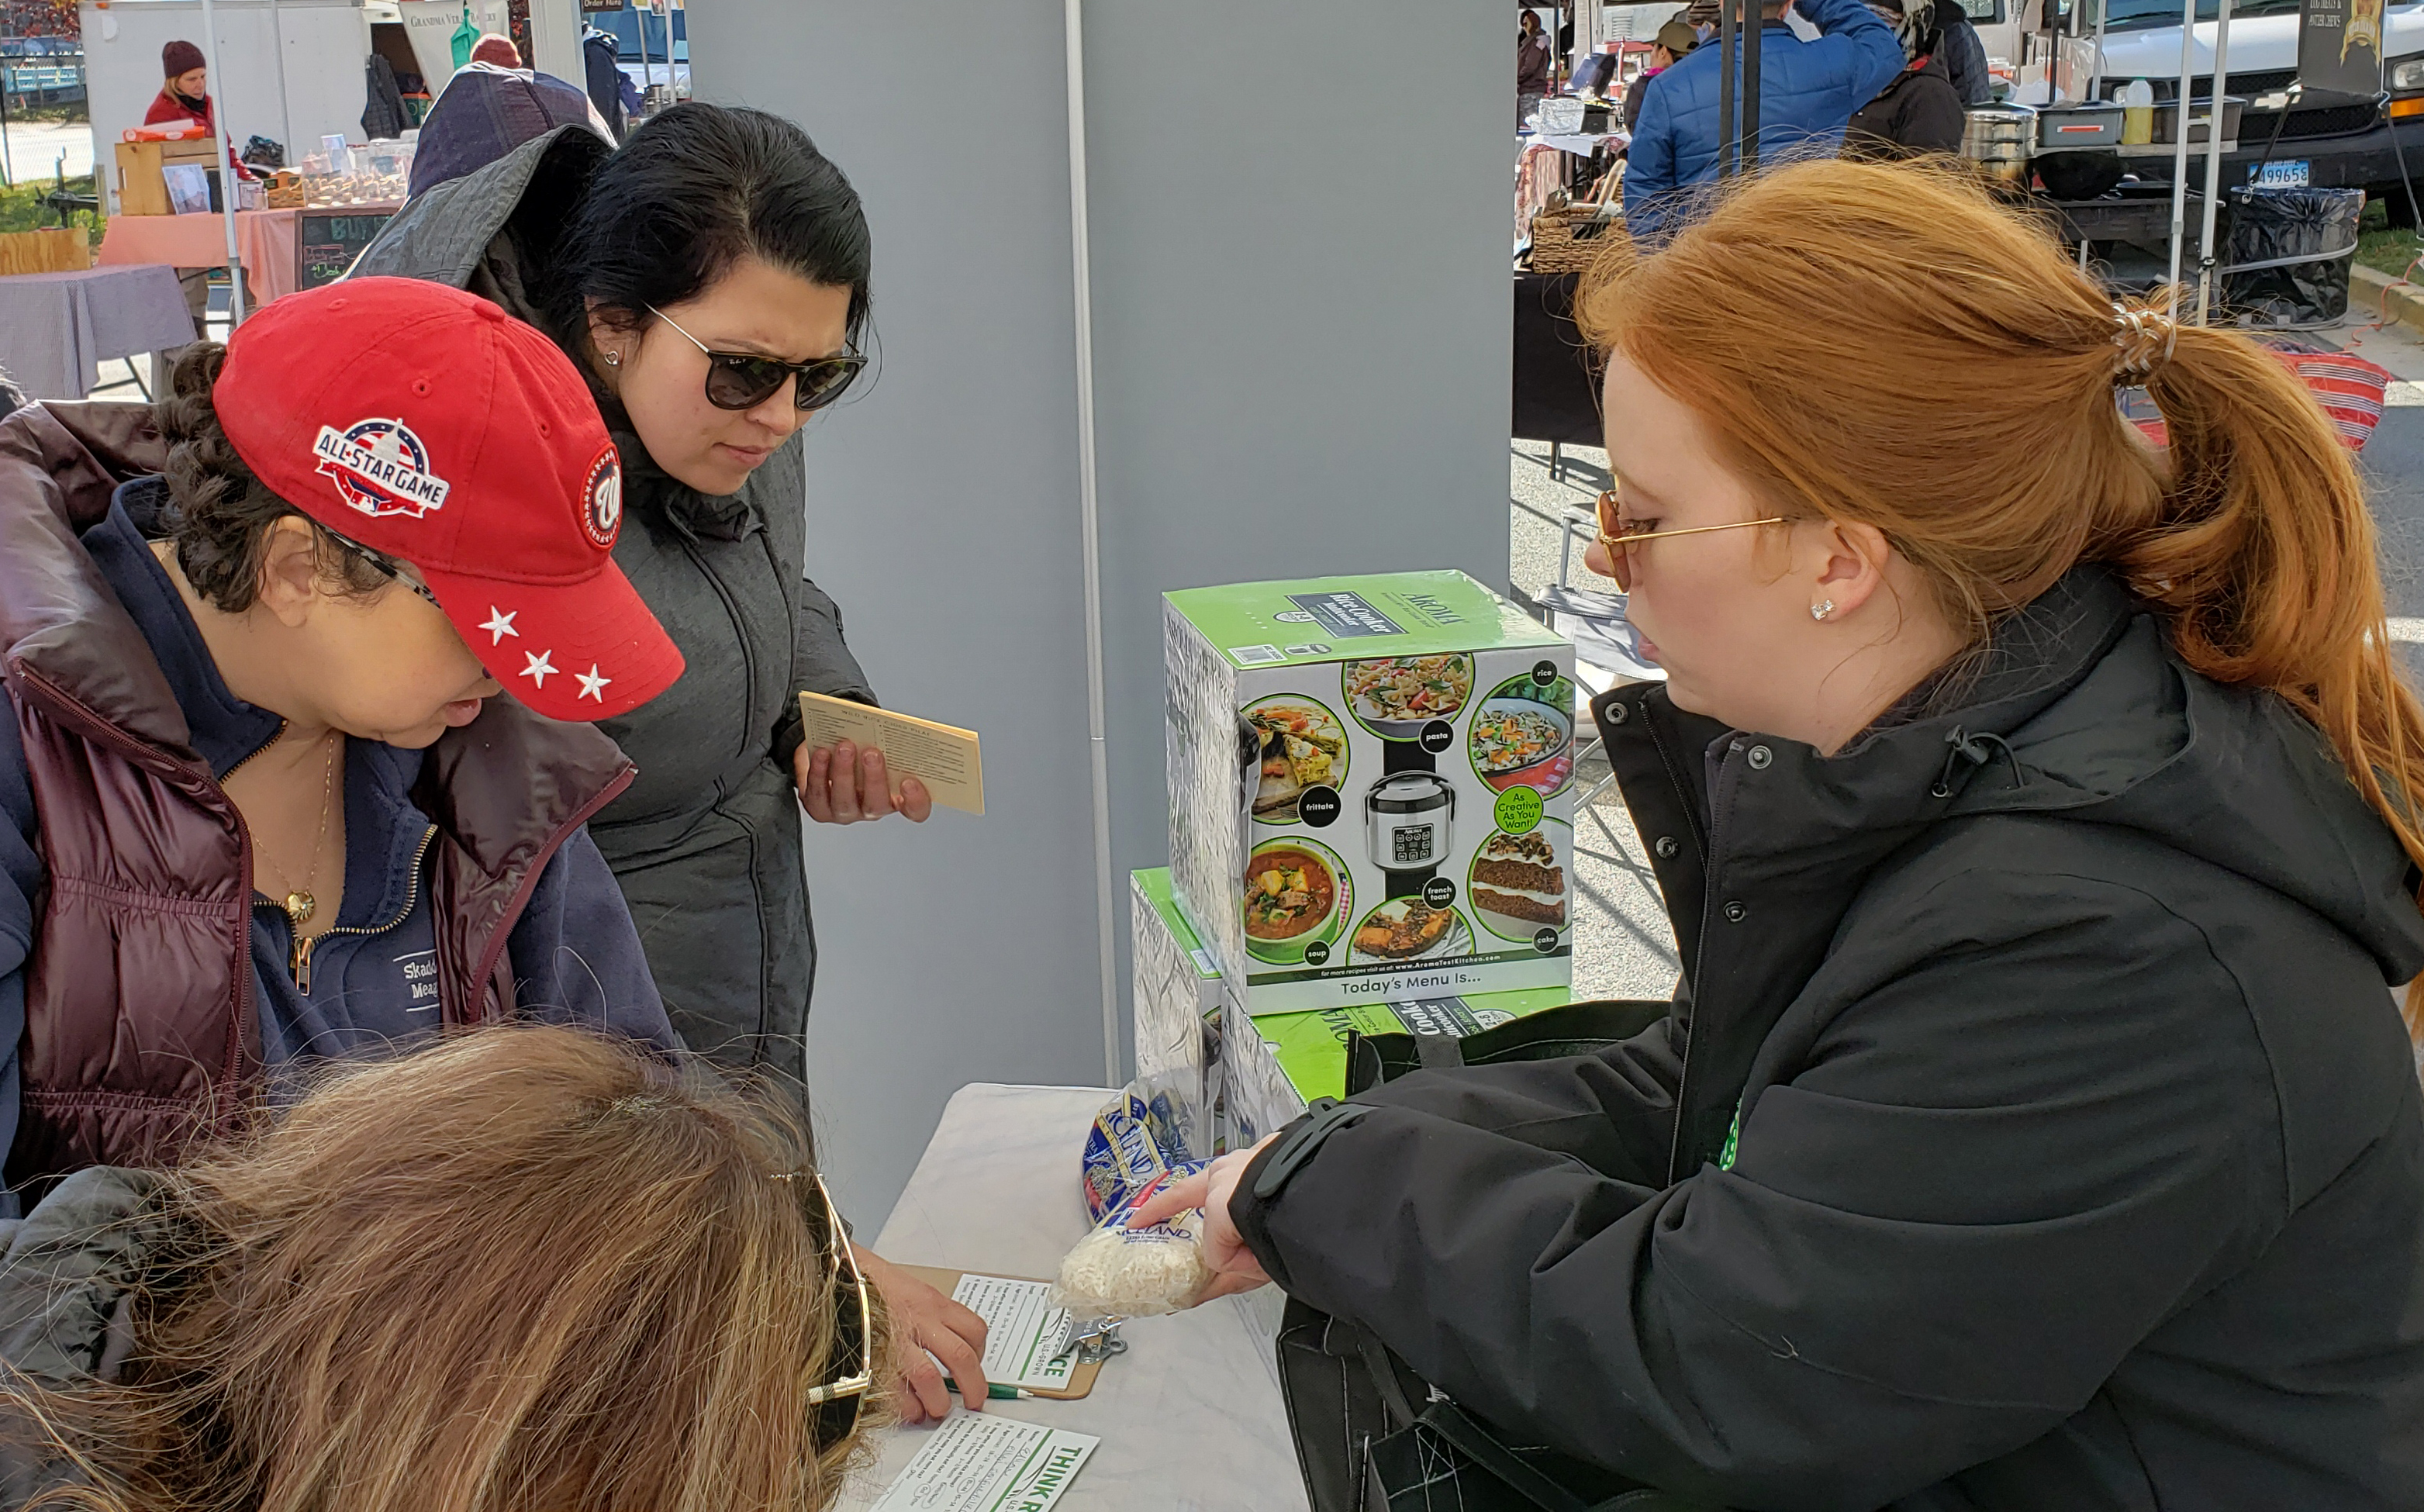 Red-haired woman points out label on bag of rice to people standing in front of table holding rice cookers